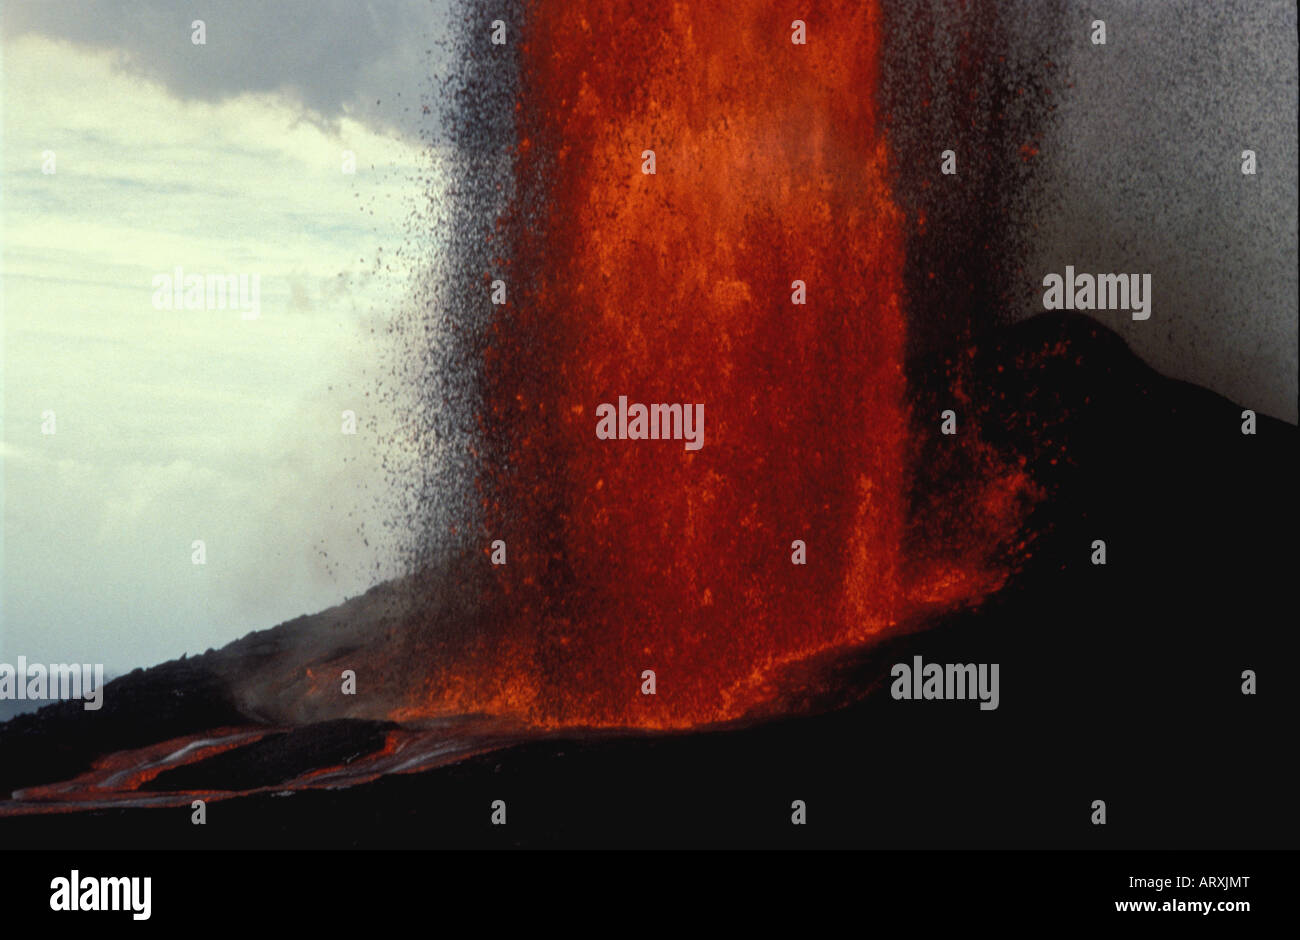 Fountaining eruption at Puu Oo vent, Big Island - Stock Image